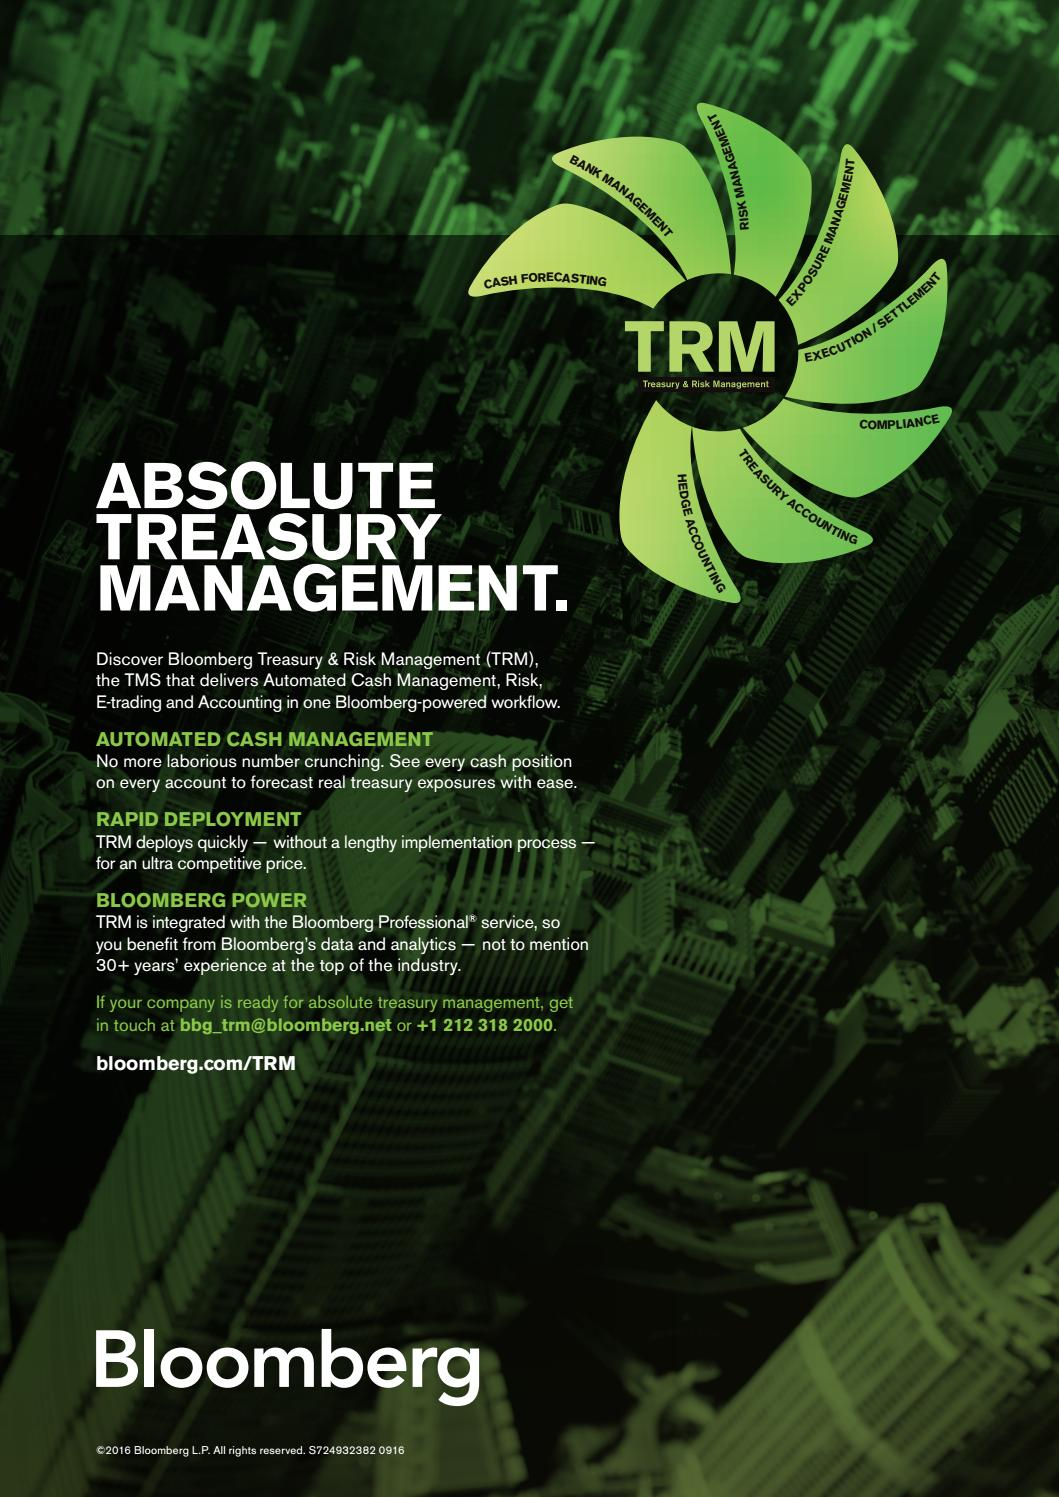 Treasury Management Systems Guide 2016/2017 by bobsguide - issuu